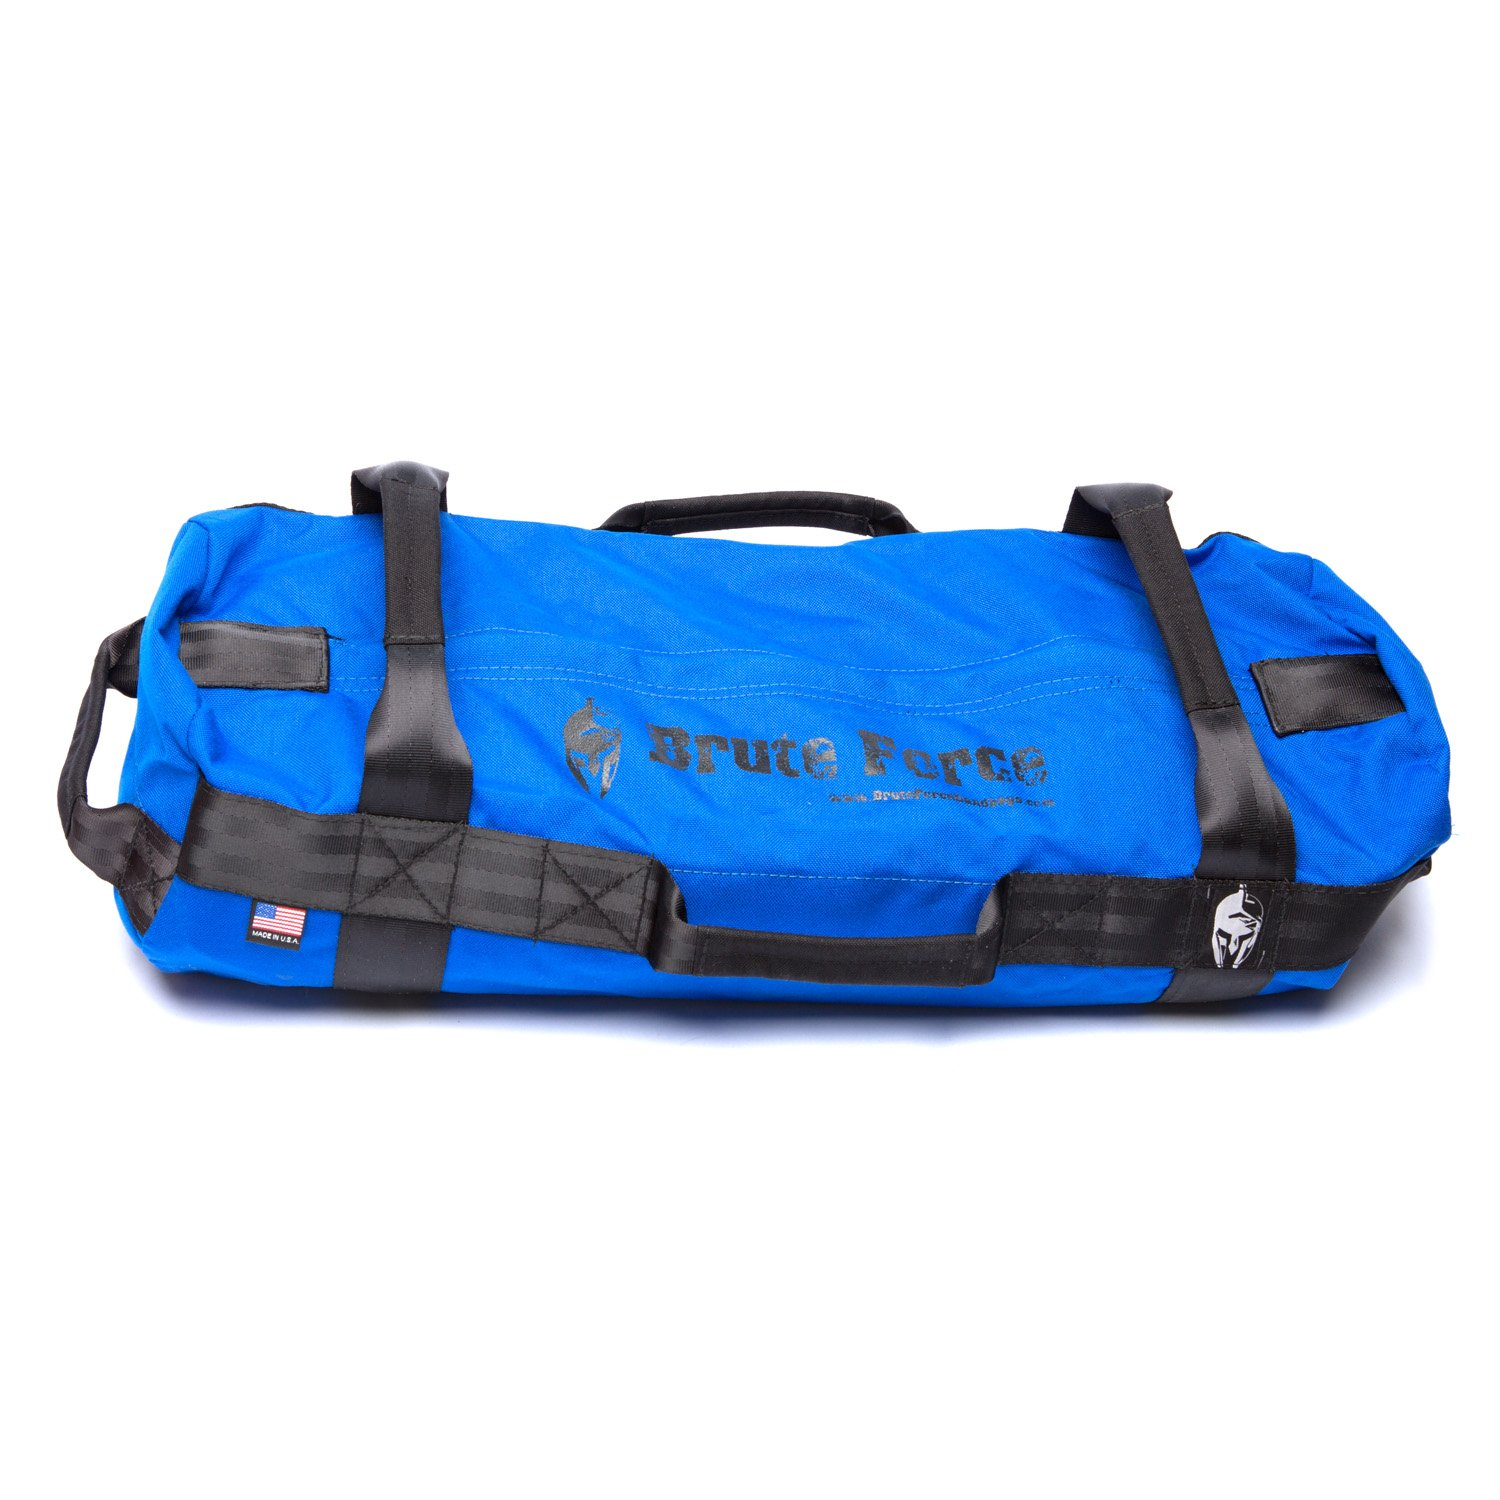 Brute Force Sandbags - Athlete Sandbag - Blue - Adjustable Extreme Sandbag up to 75 lbs Made in The USA Home Gym Sandbag